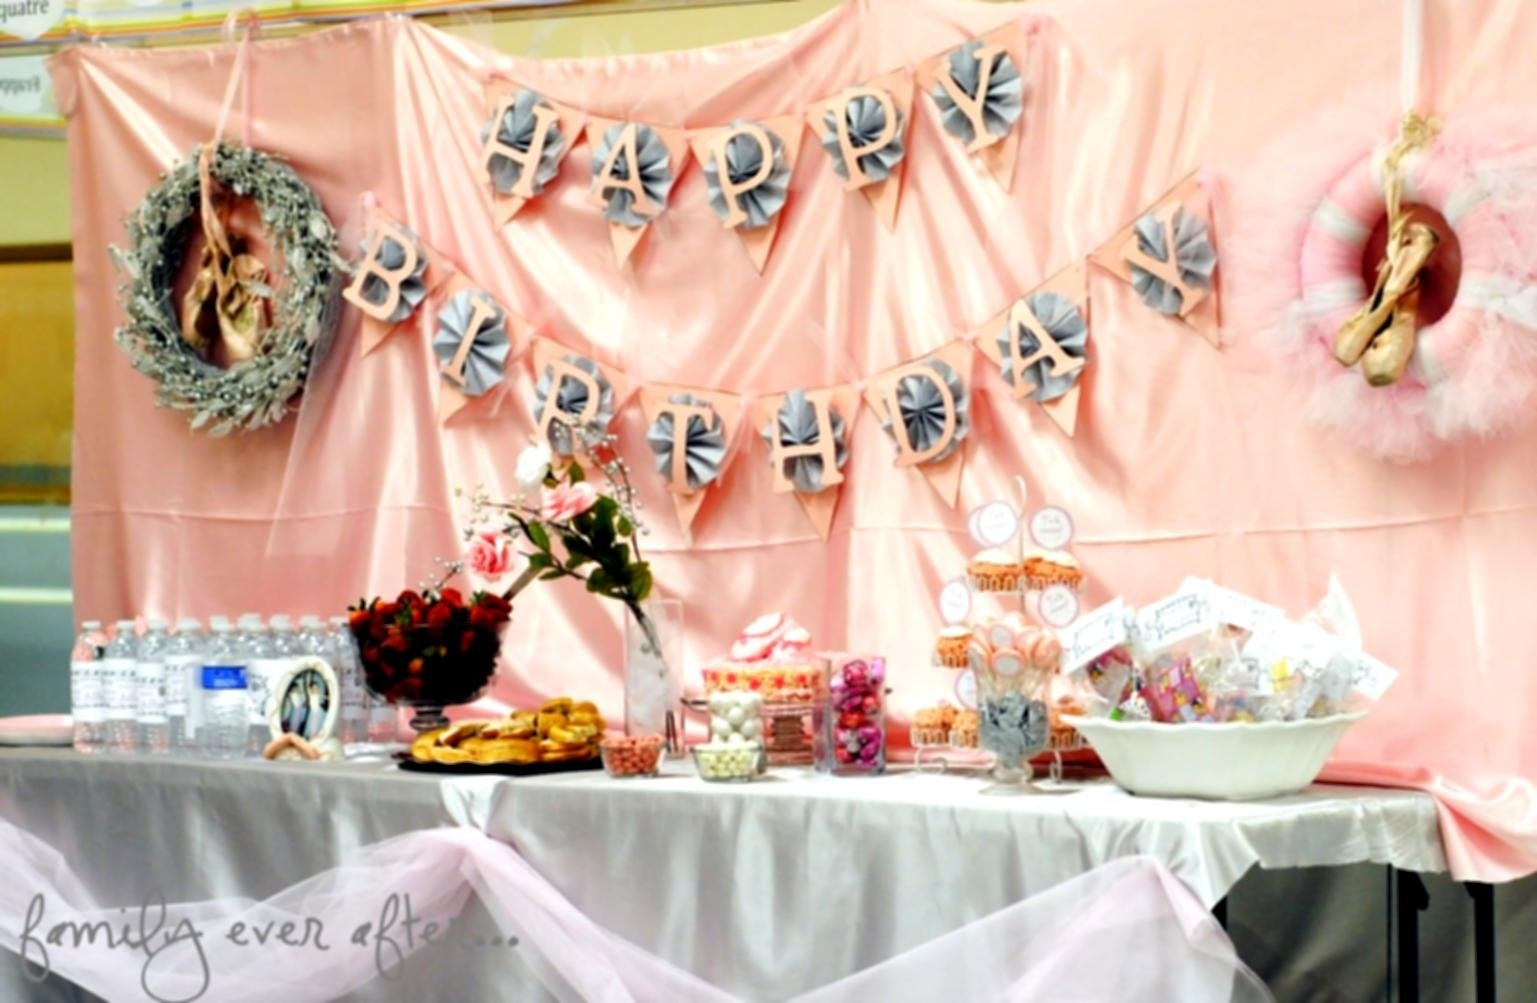 10 Most Recommended Teenage Girl Birthday Party Ideas teenage girl birthday party ideas prom dresses and beauty 3 2020